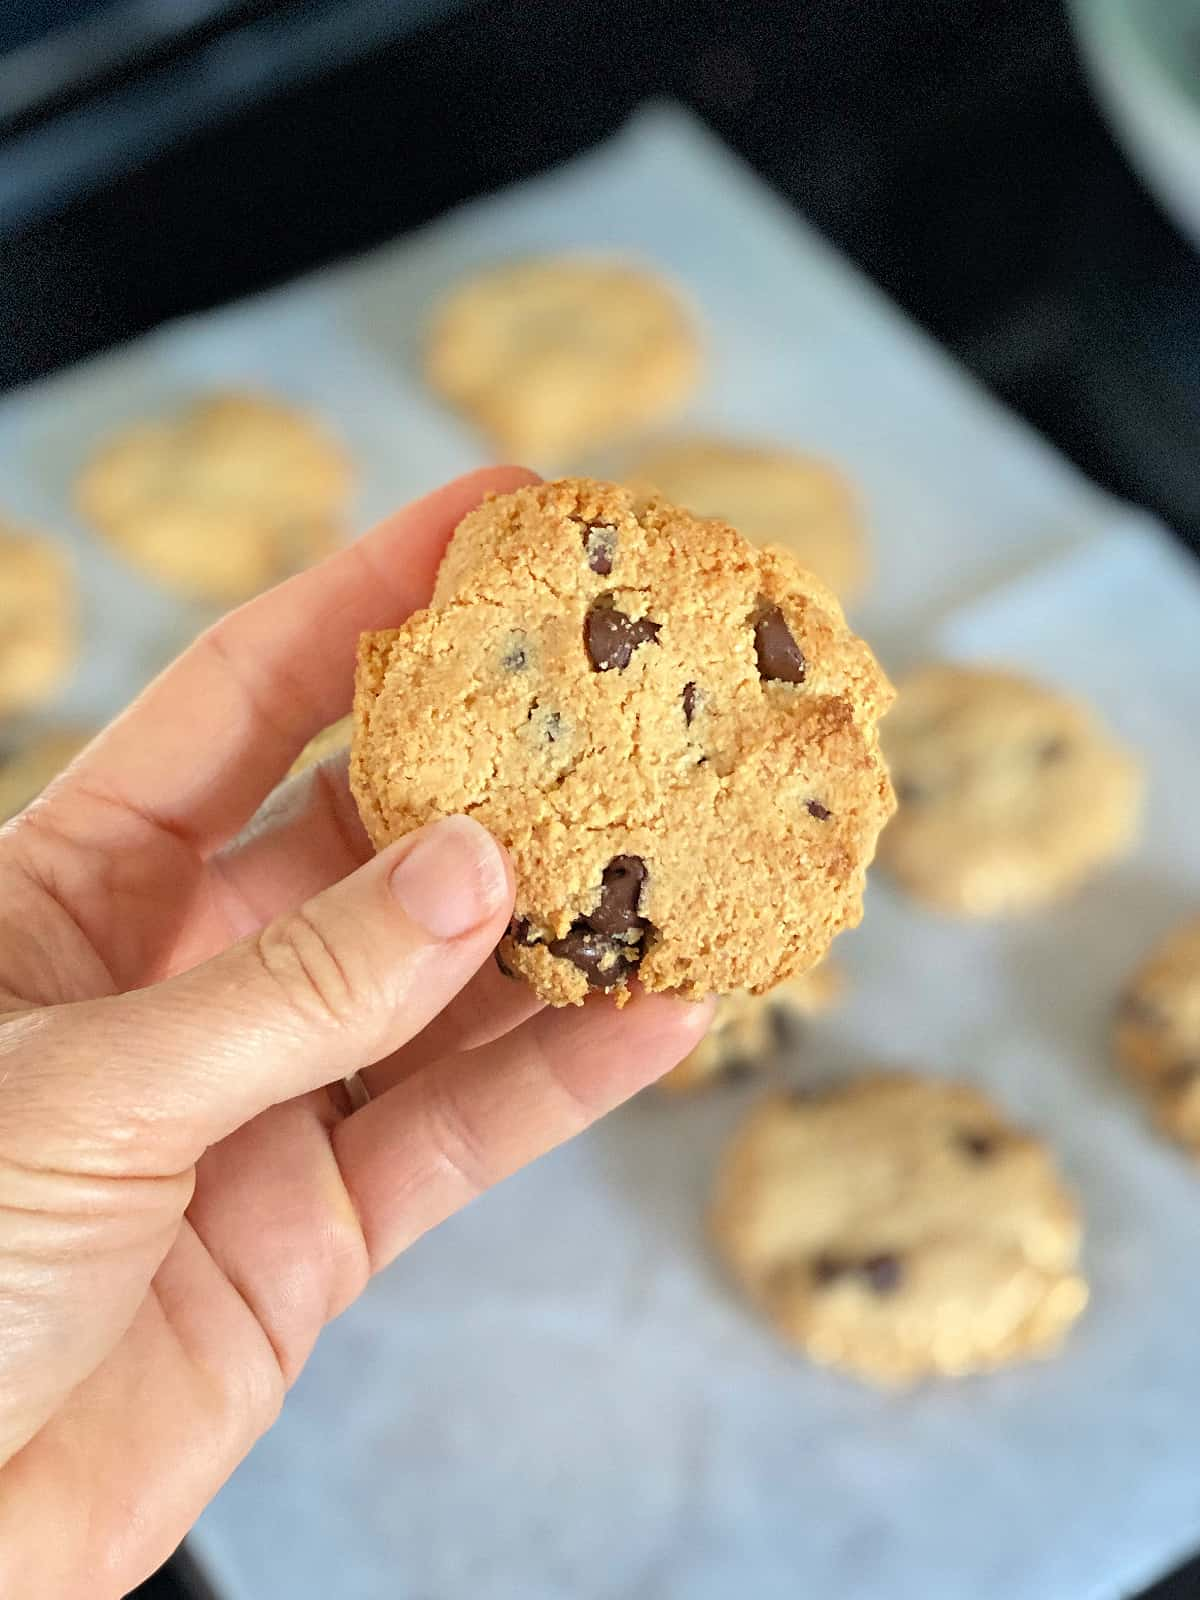 person holding a chocolate chip cookie